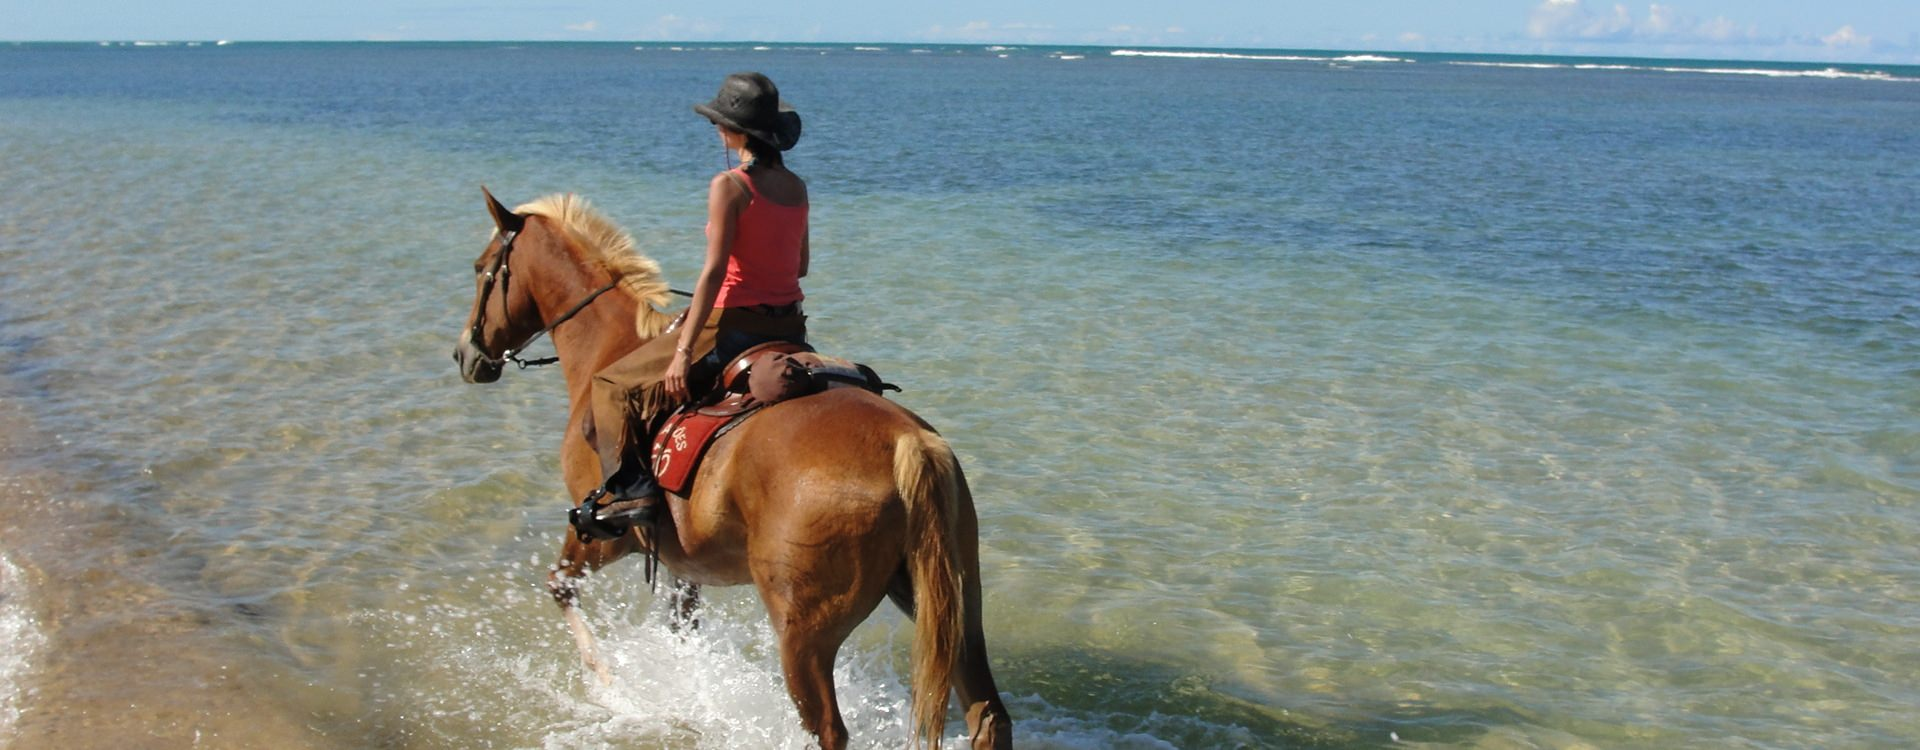 Riding on the beaches of Bahia